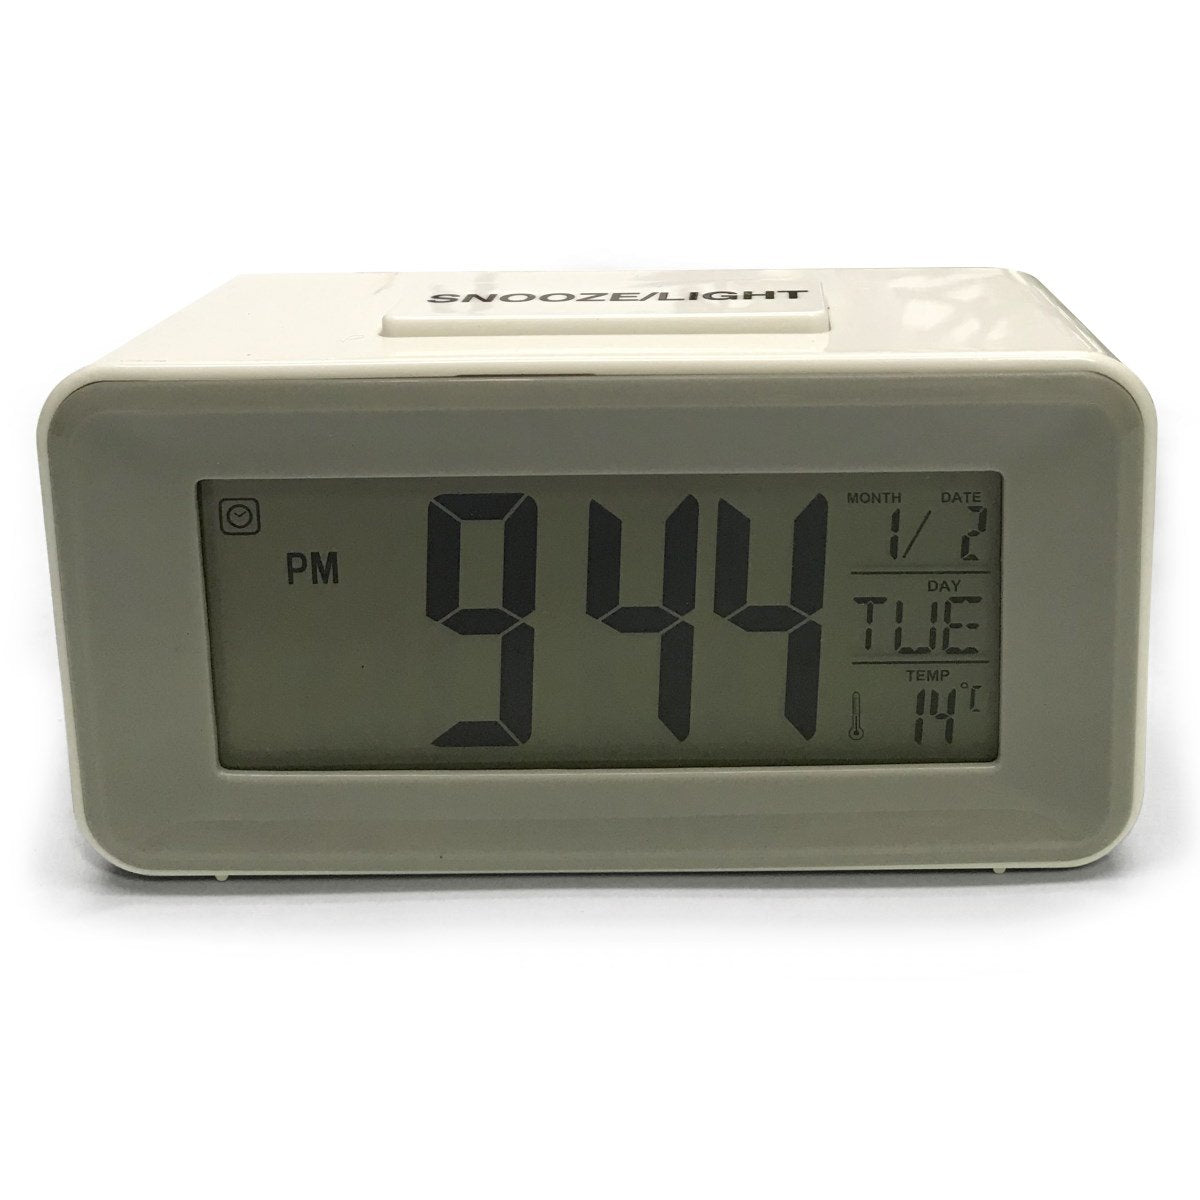 Checkmate Brycen Multifunction Digital Alarm Clock White 11cm VGW-3620-WHI 2